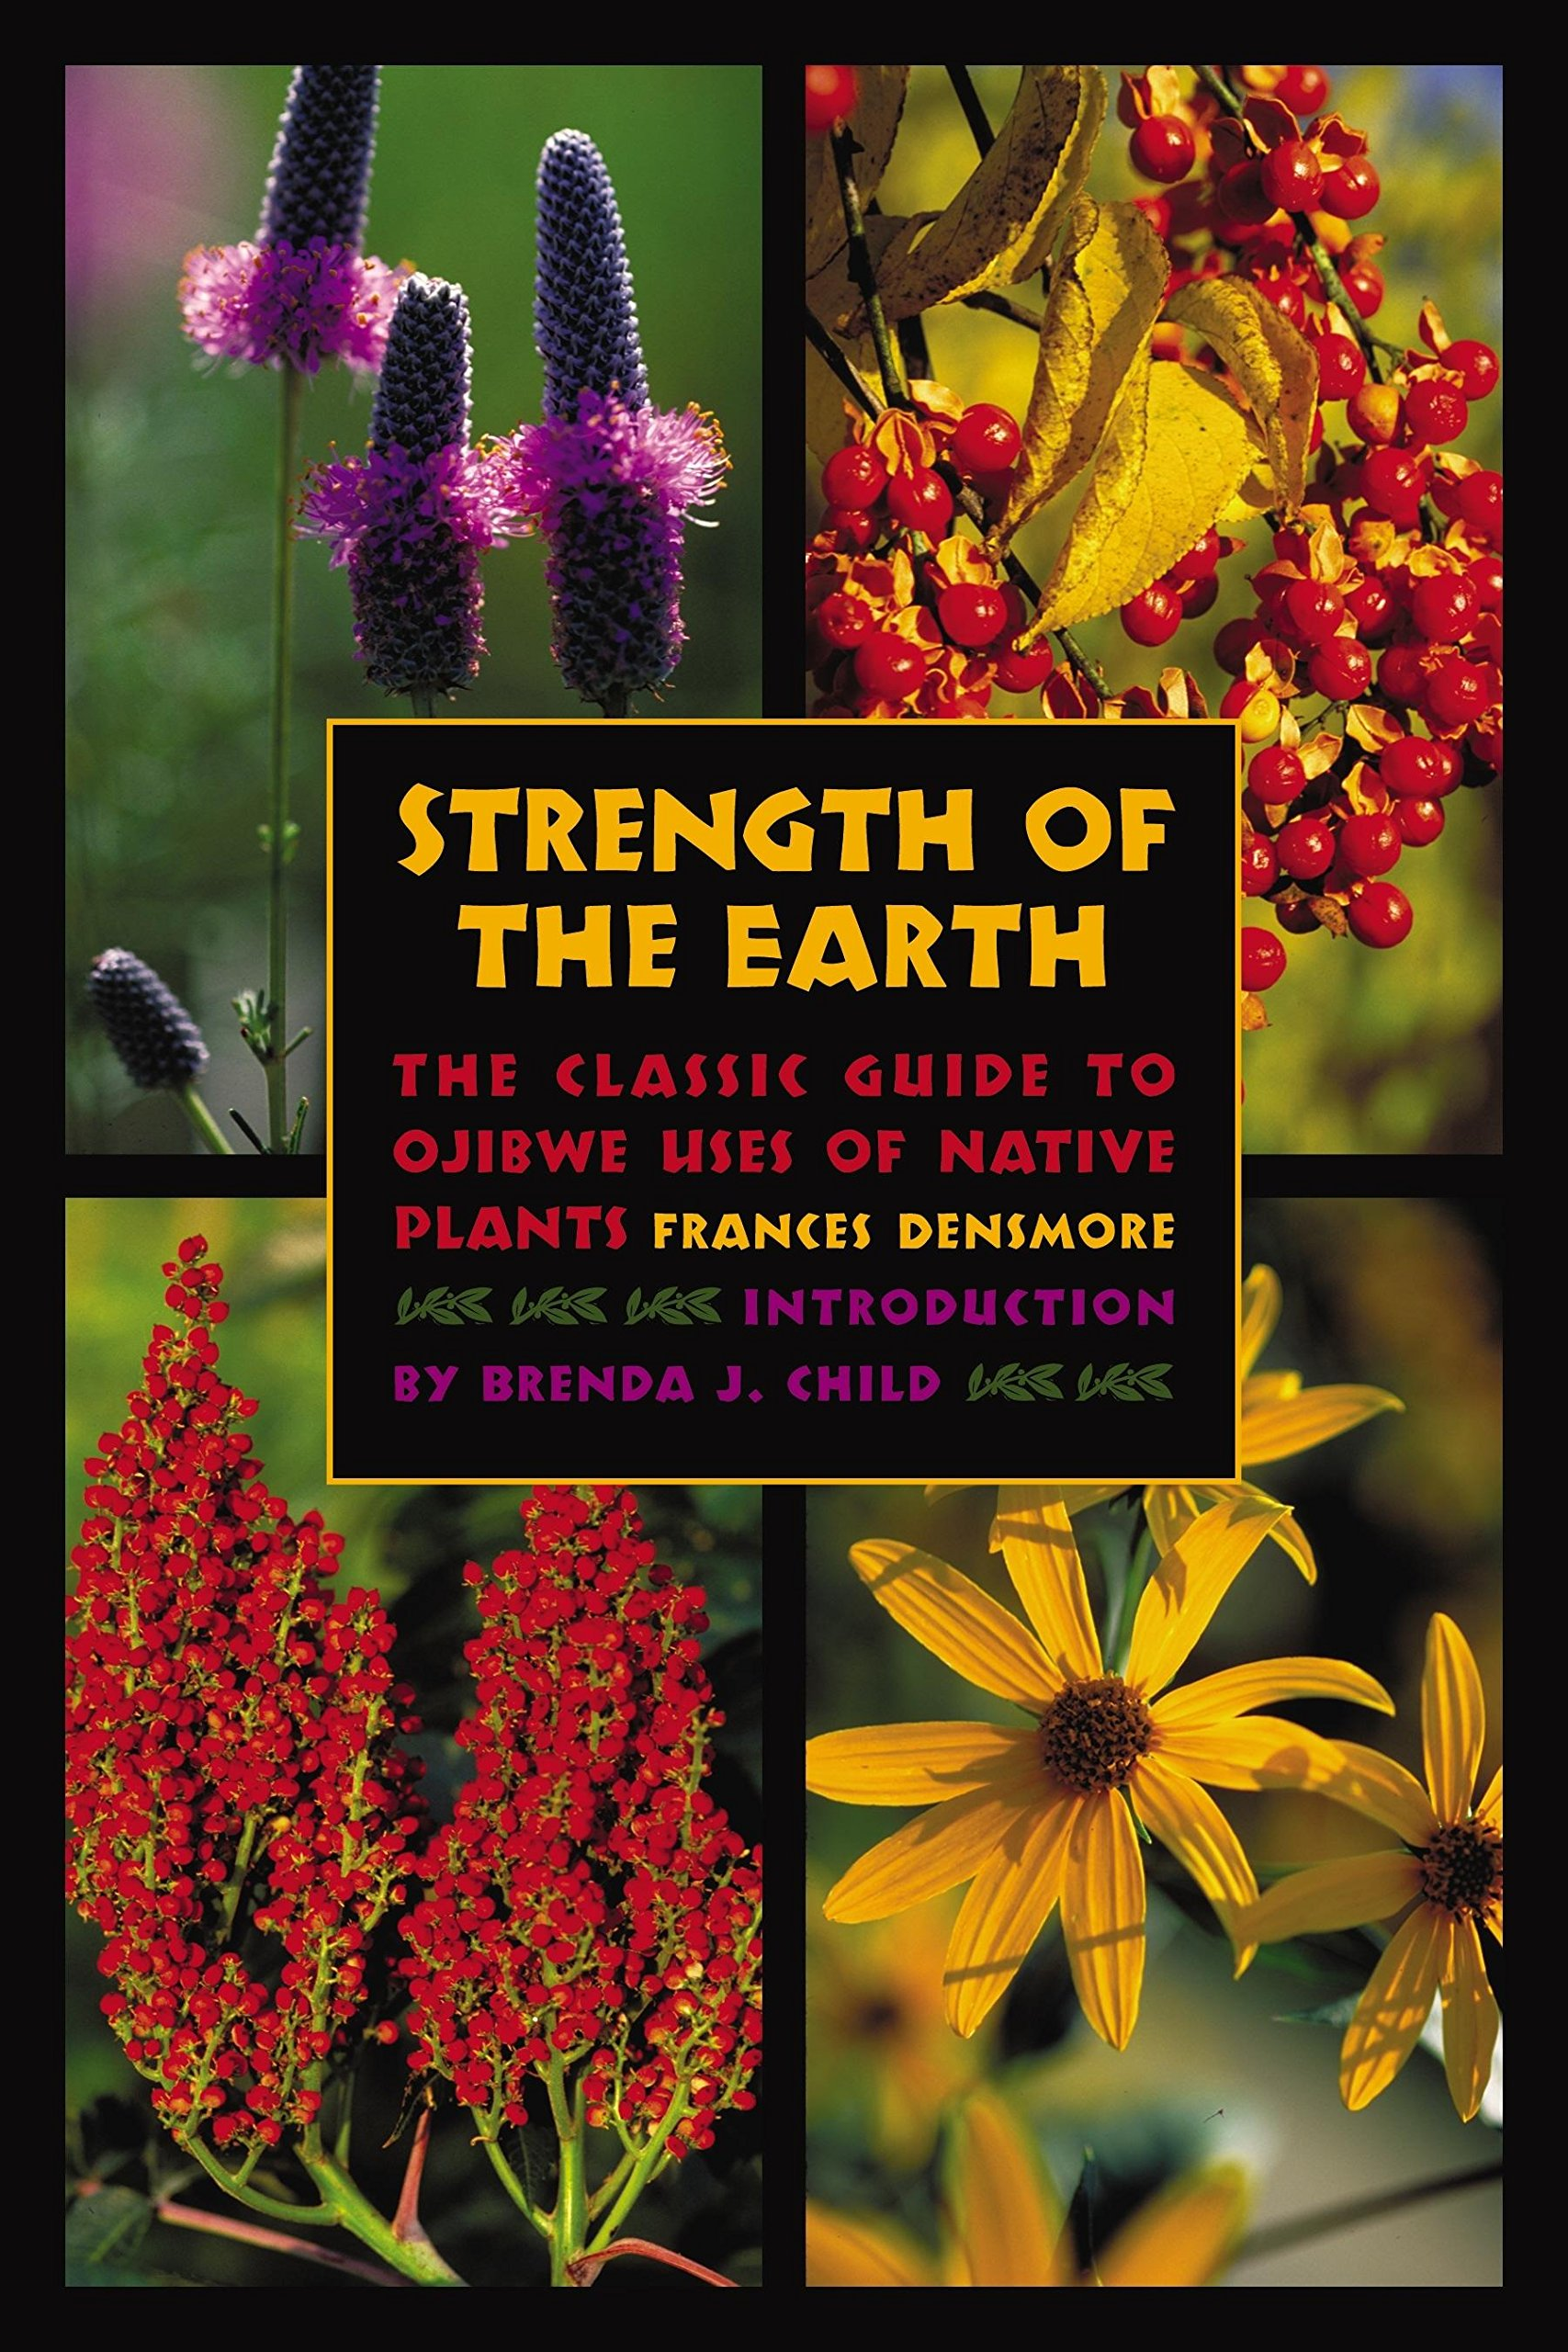 Strength of the Earth: The Classic Guide to Ojibwe Uses of Native Plants pdf